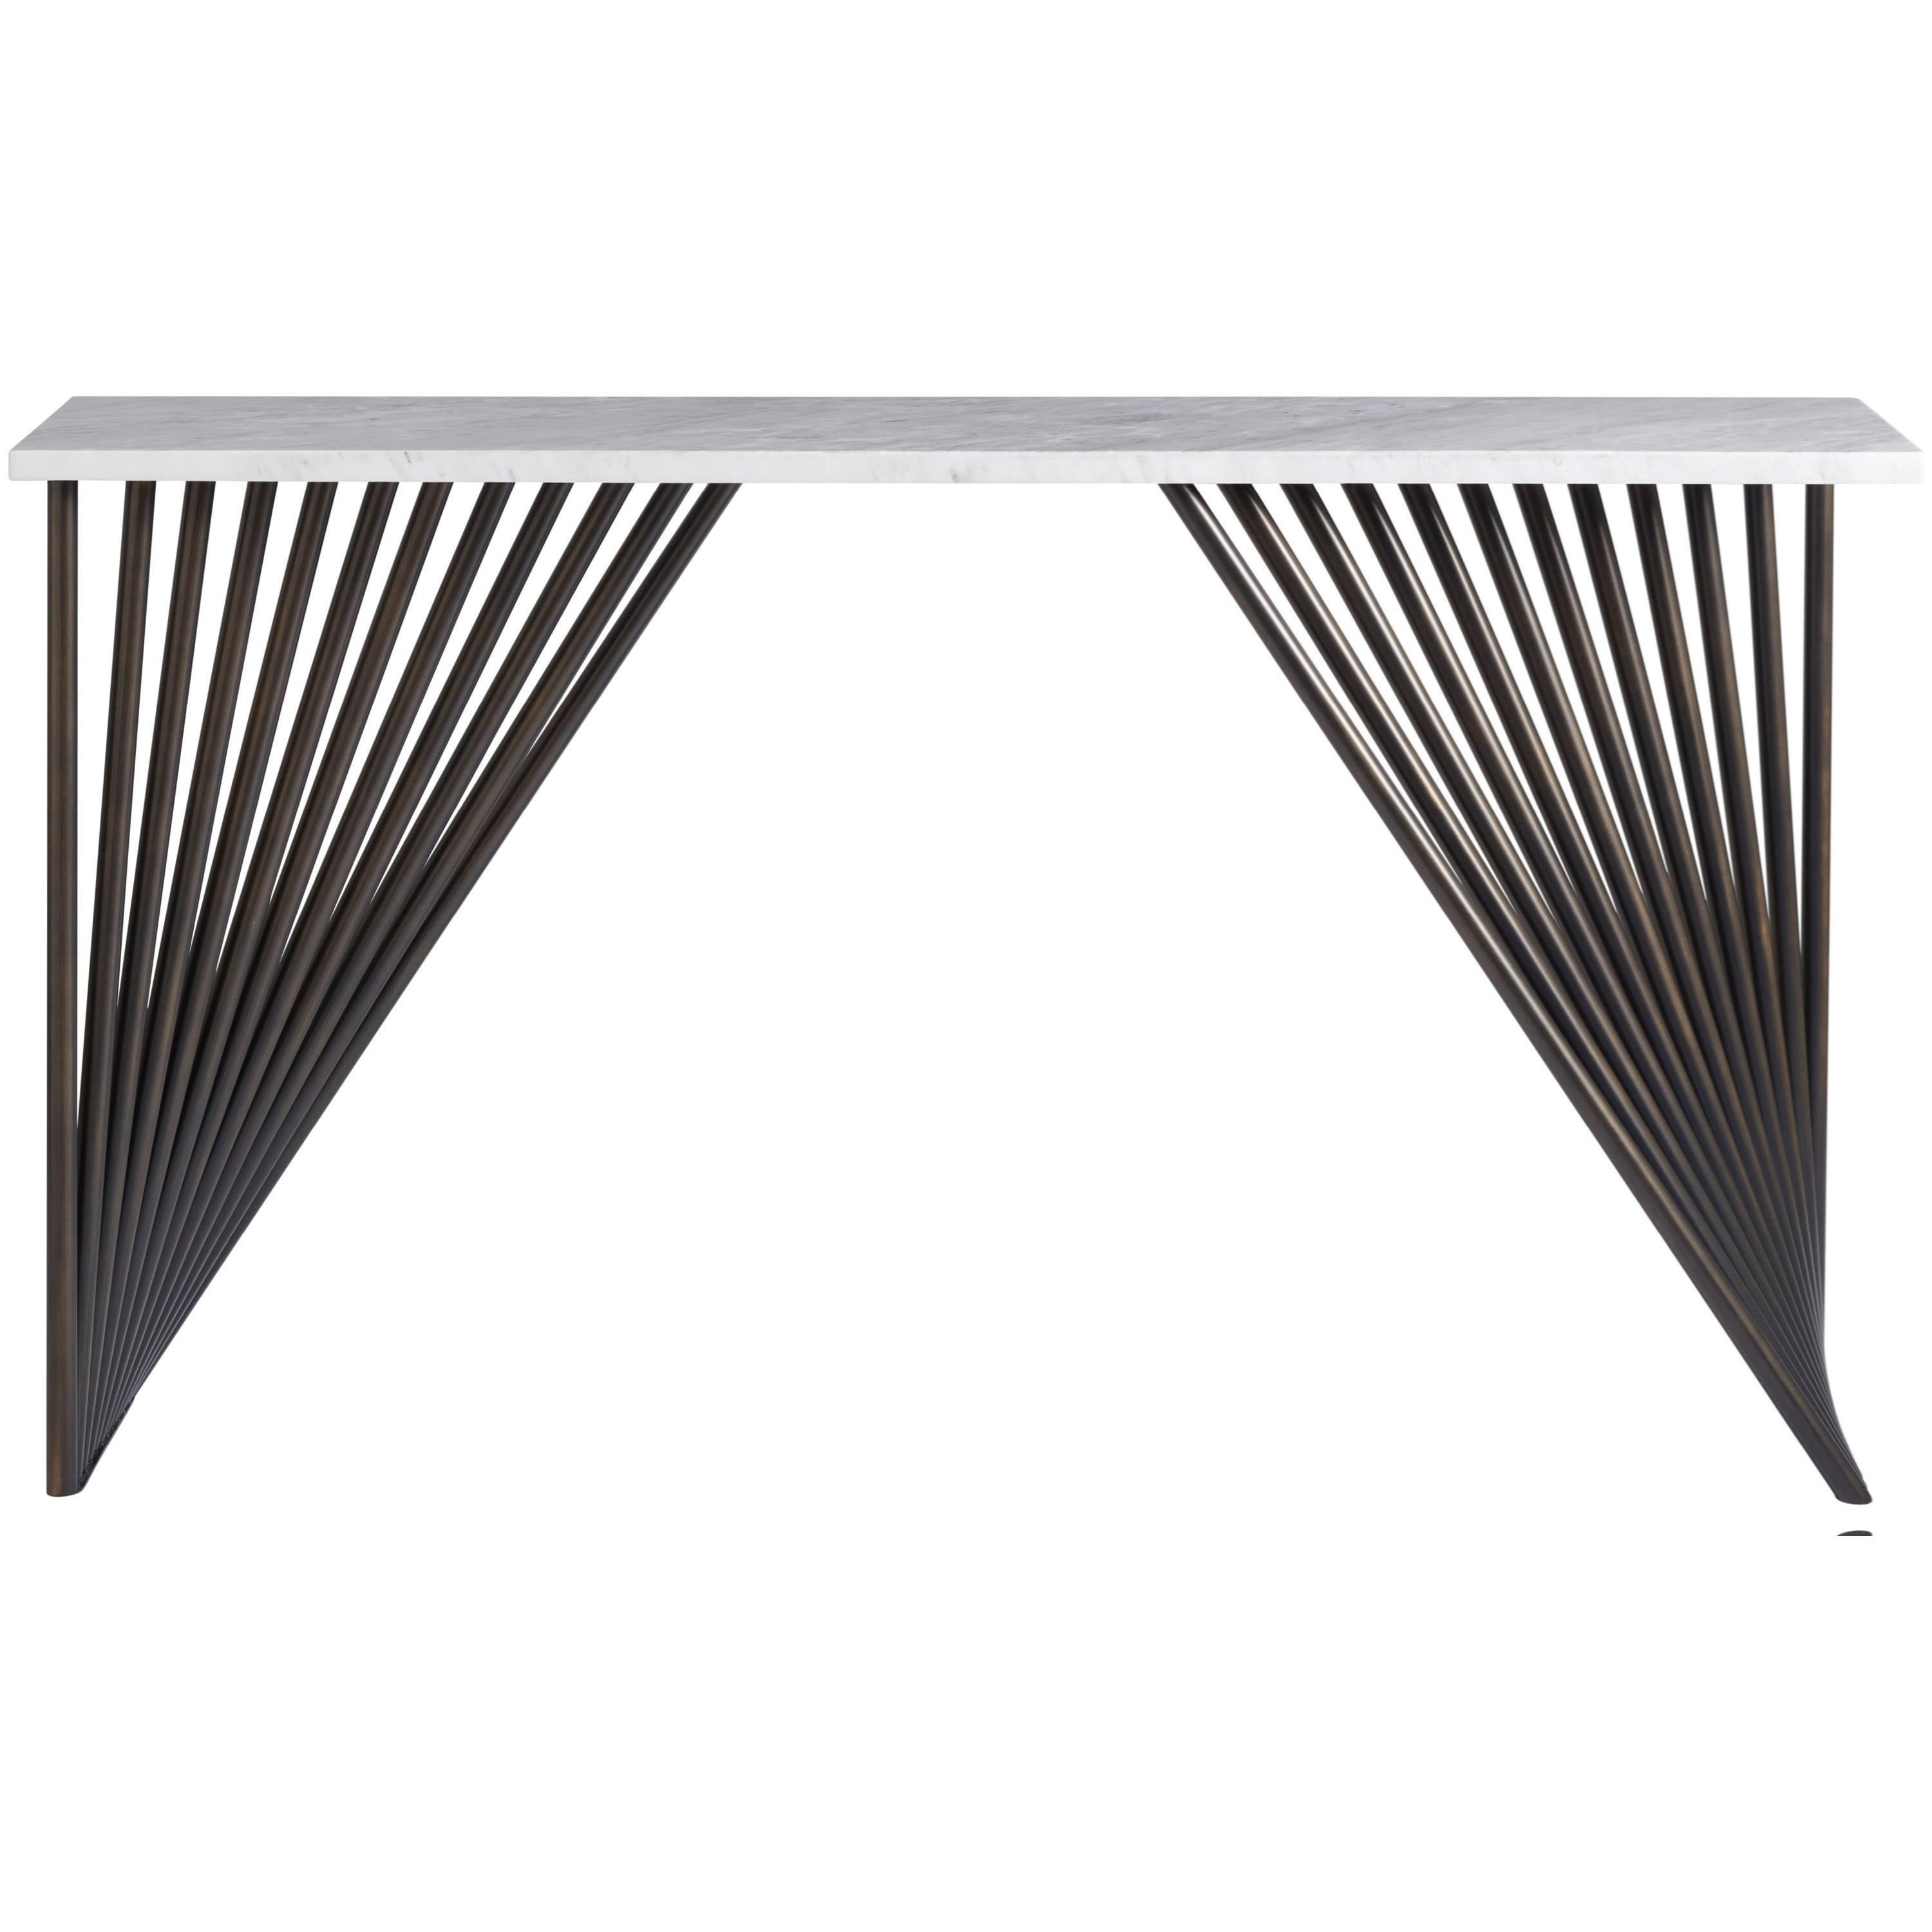 Nina Magon 941 Marcel Console Table by Universal at Baer's Furniture